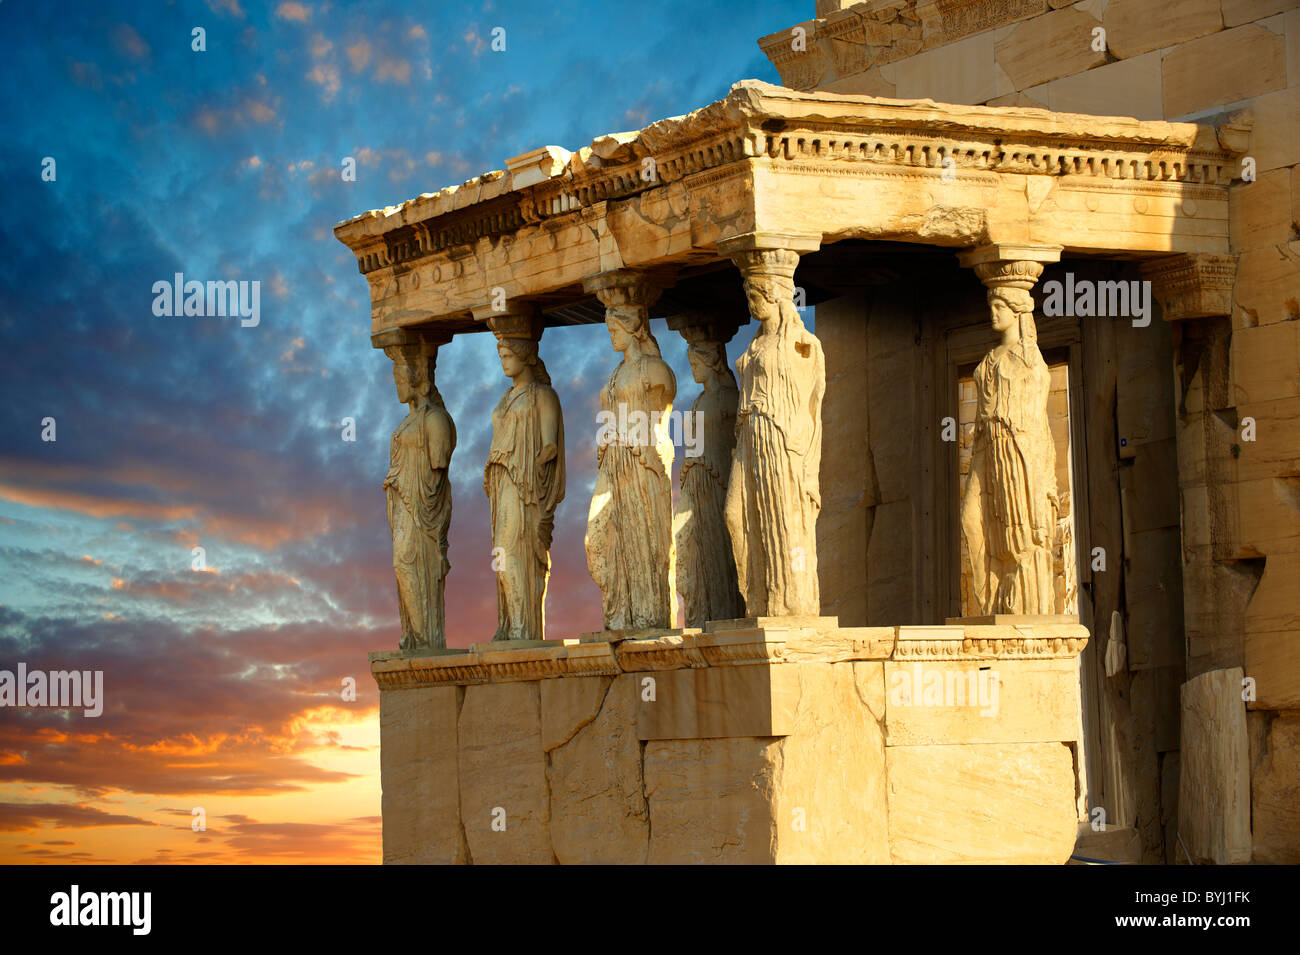 The Porch of the Caryatids. The Erechtheum, the Acropolis of Athens in Greece. Stock Photo